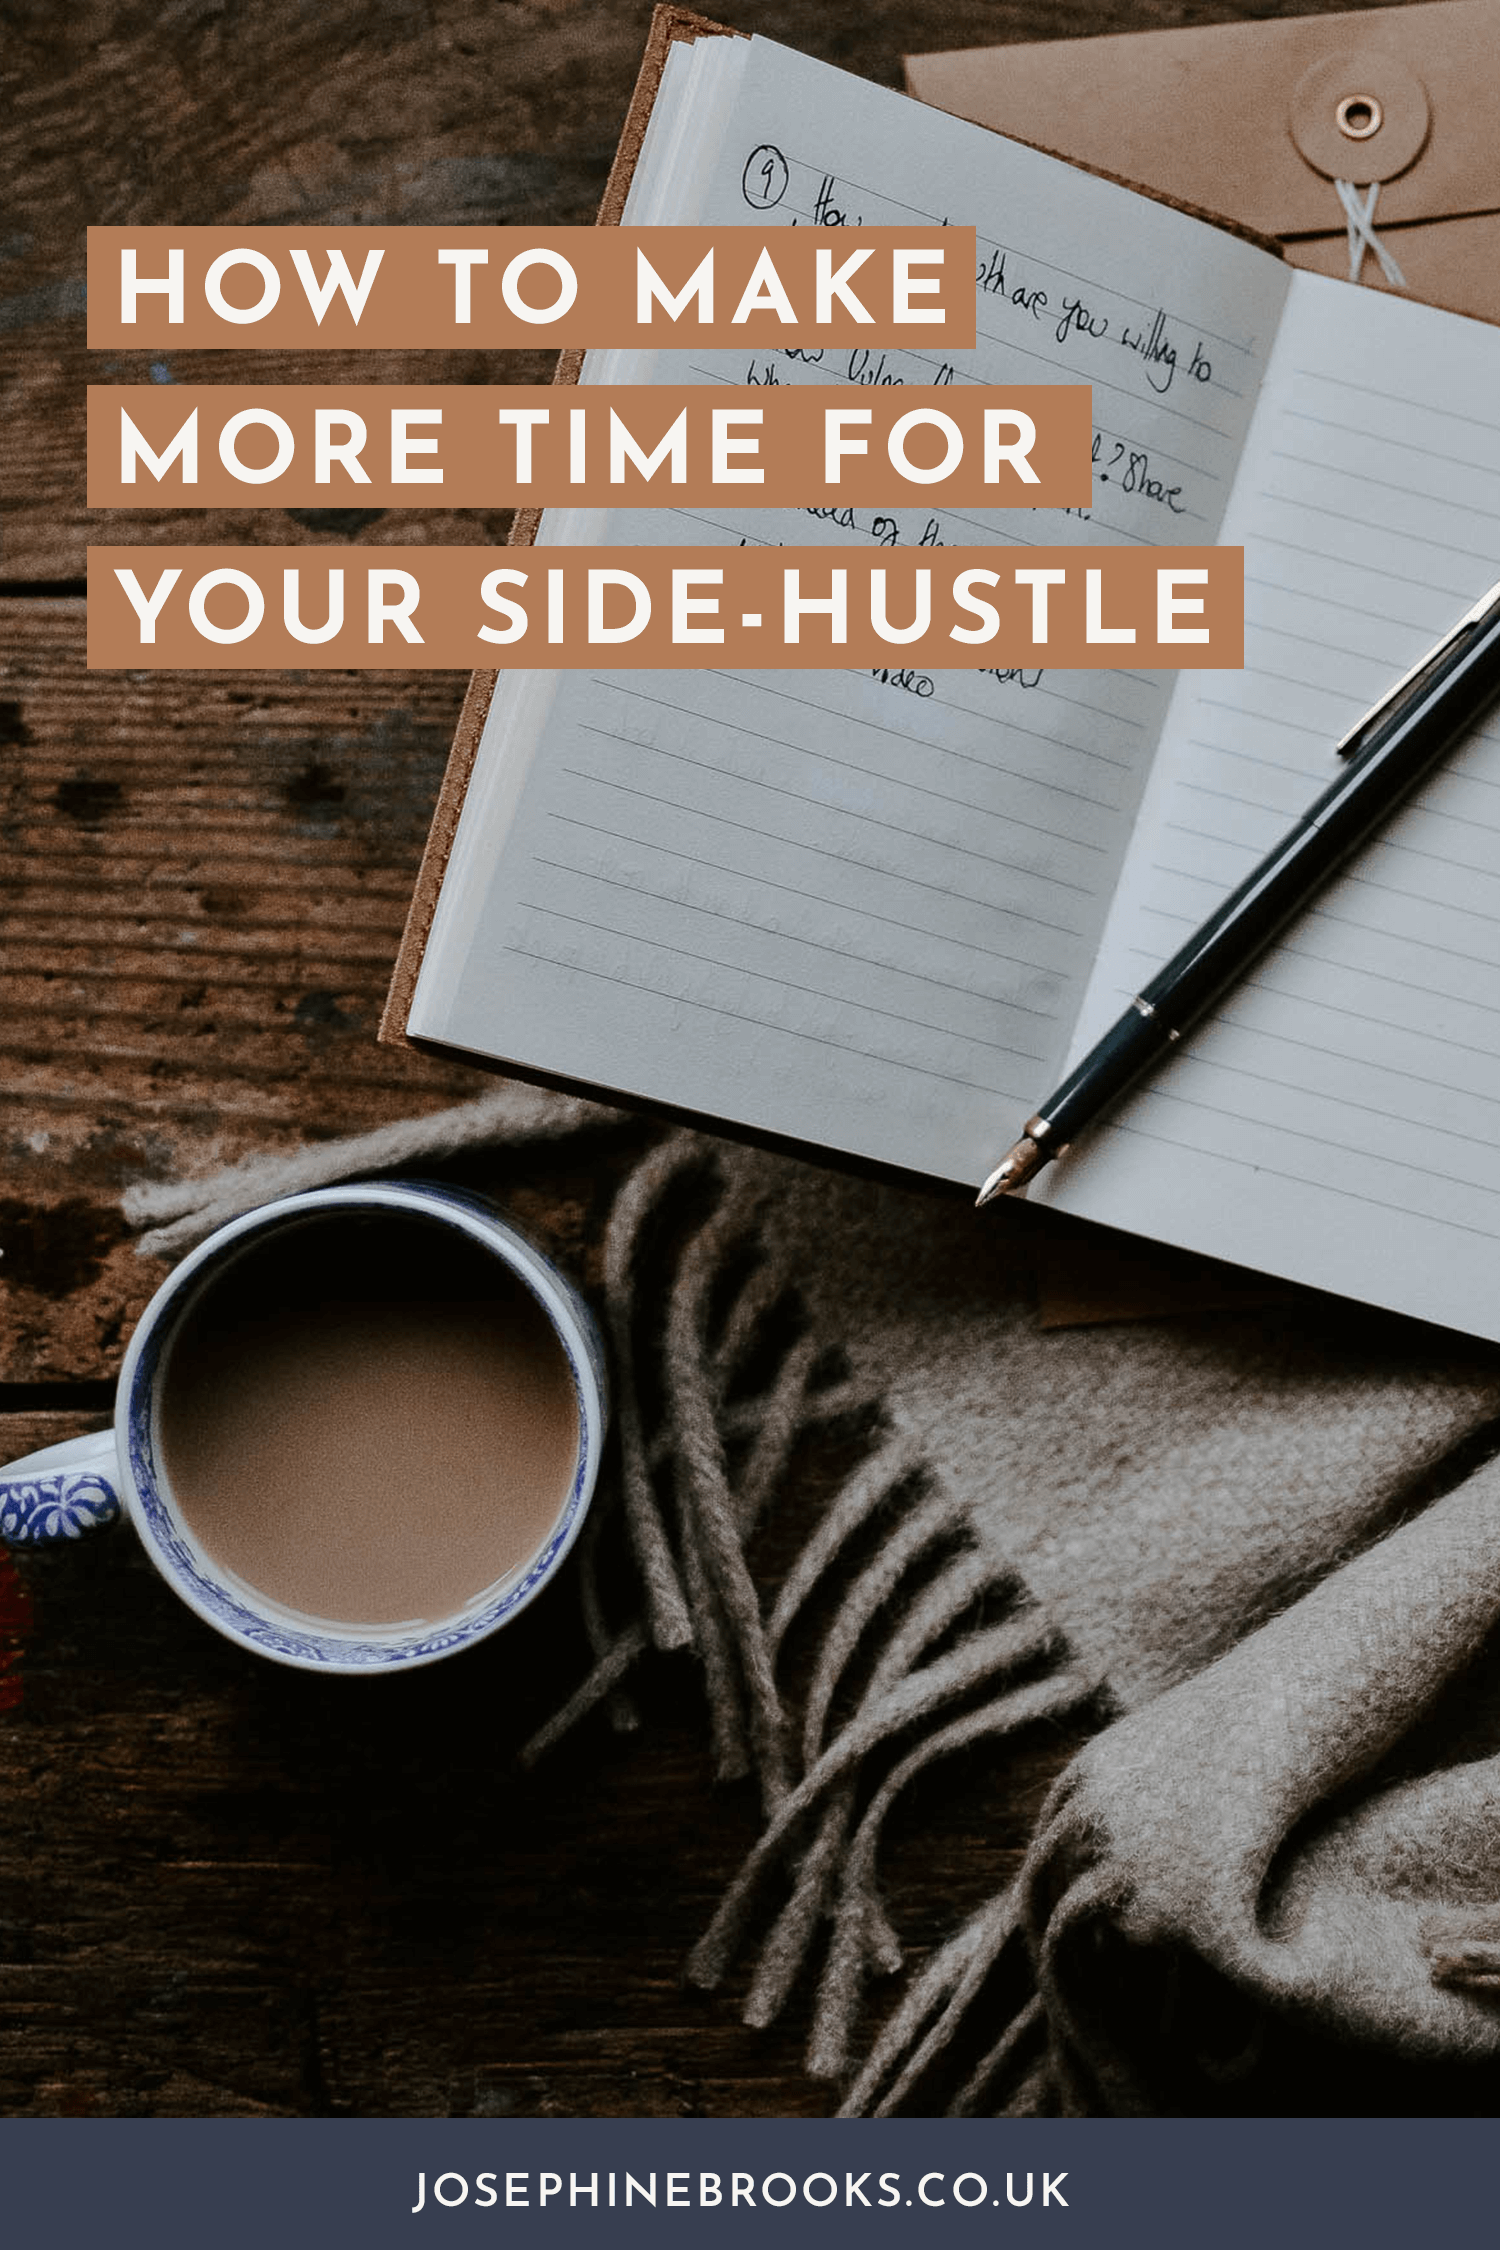 How to Make More Time for Your Side-Hustle - My 4 tips